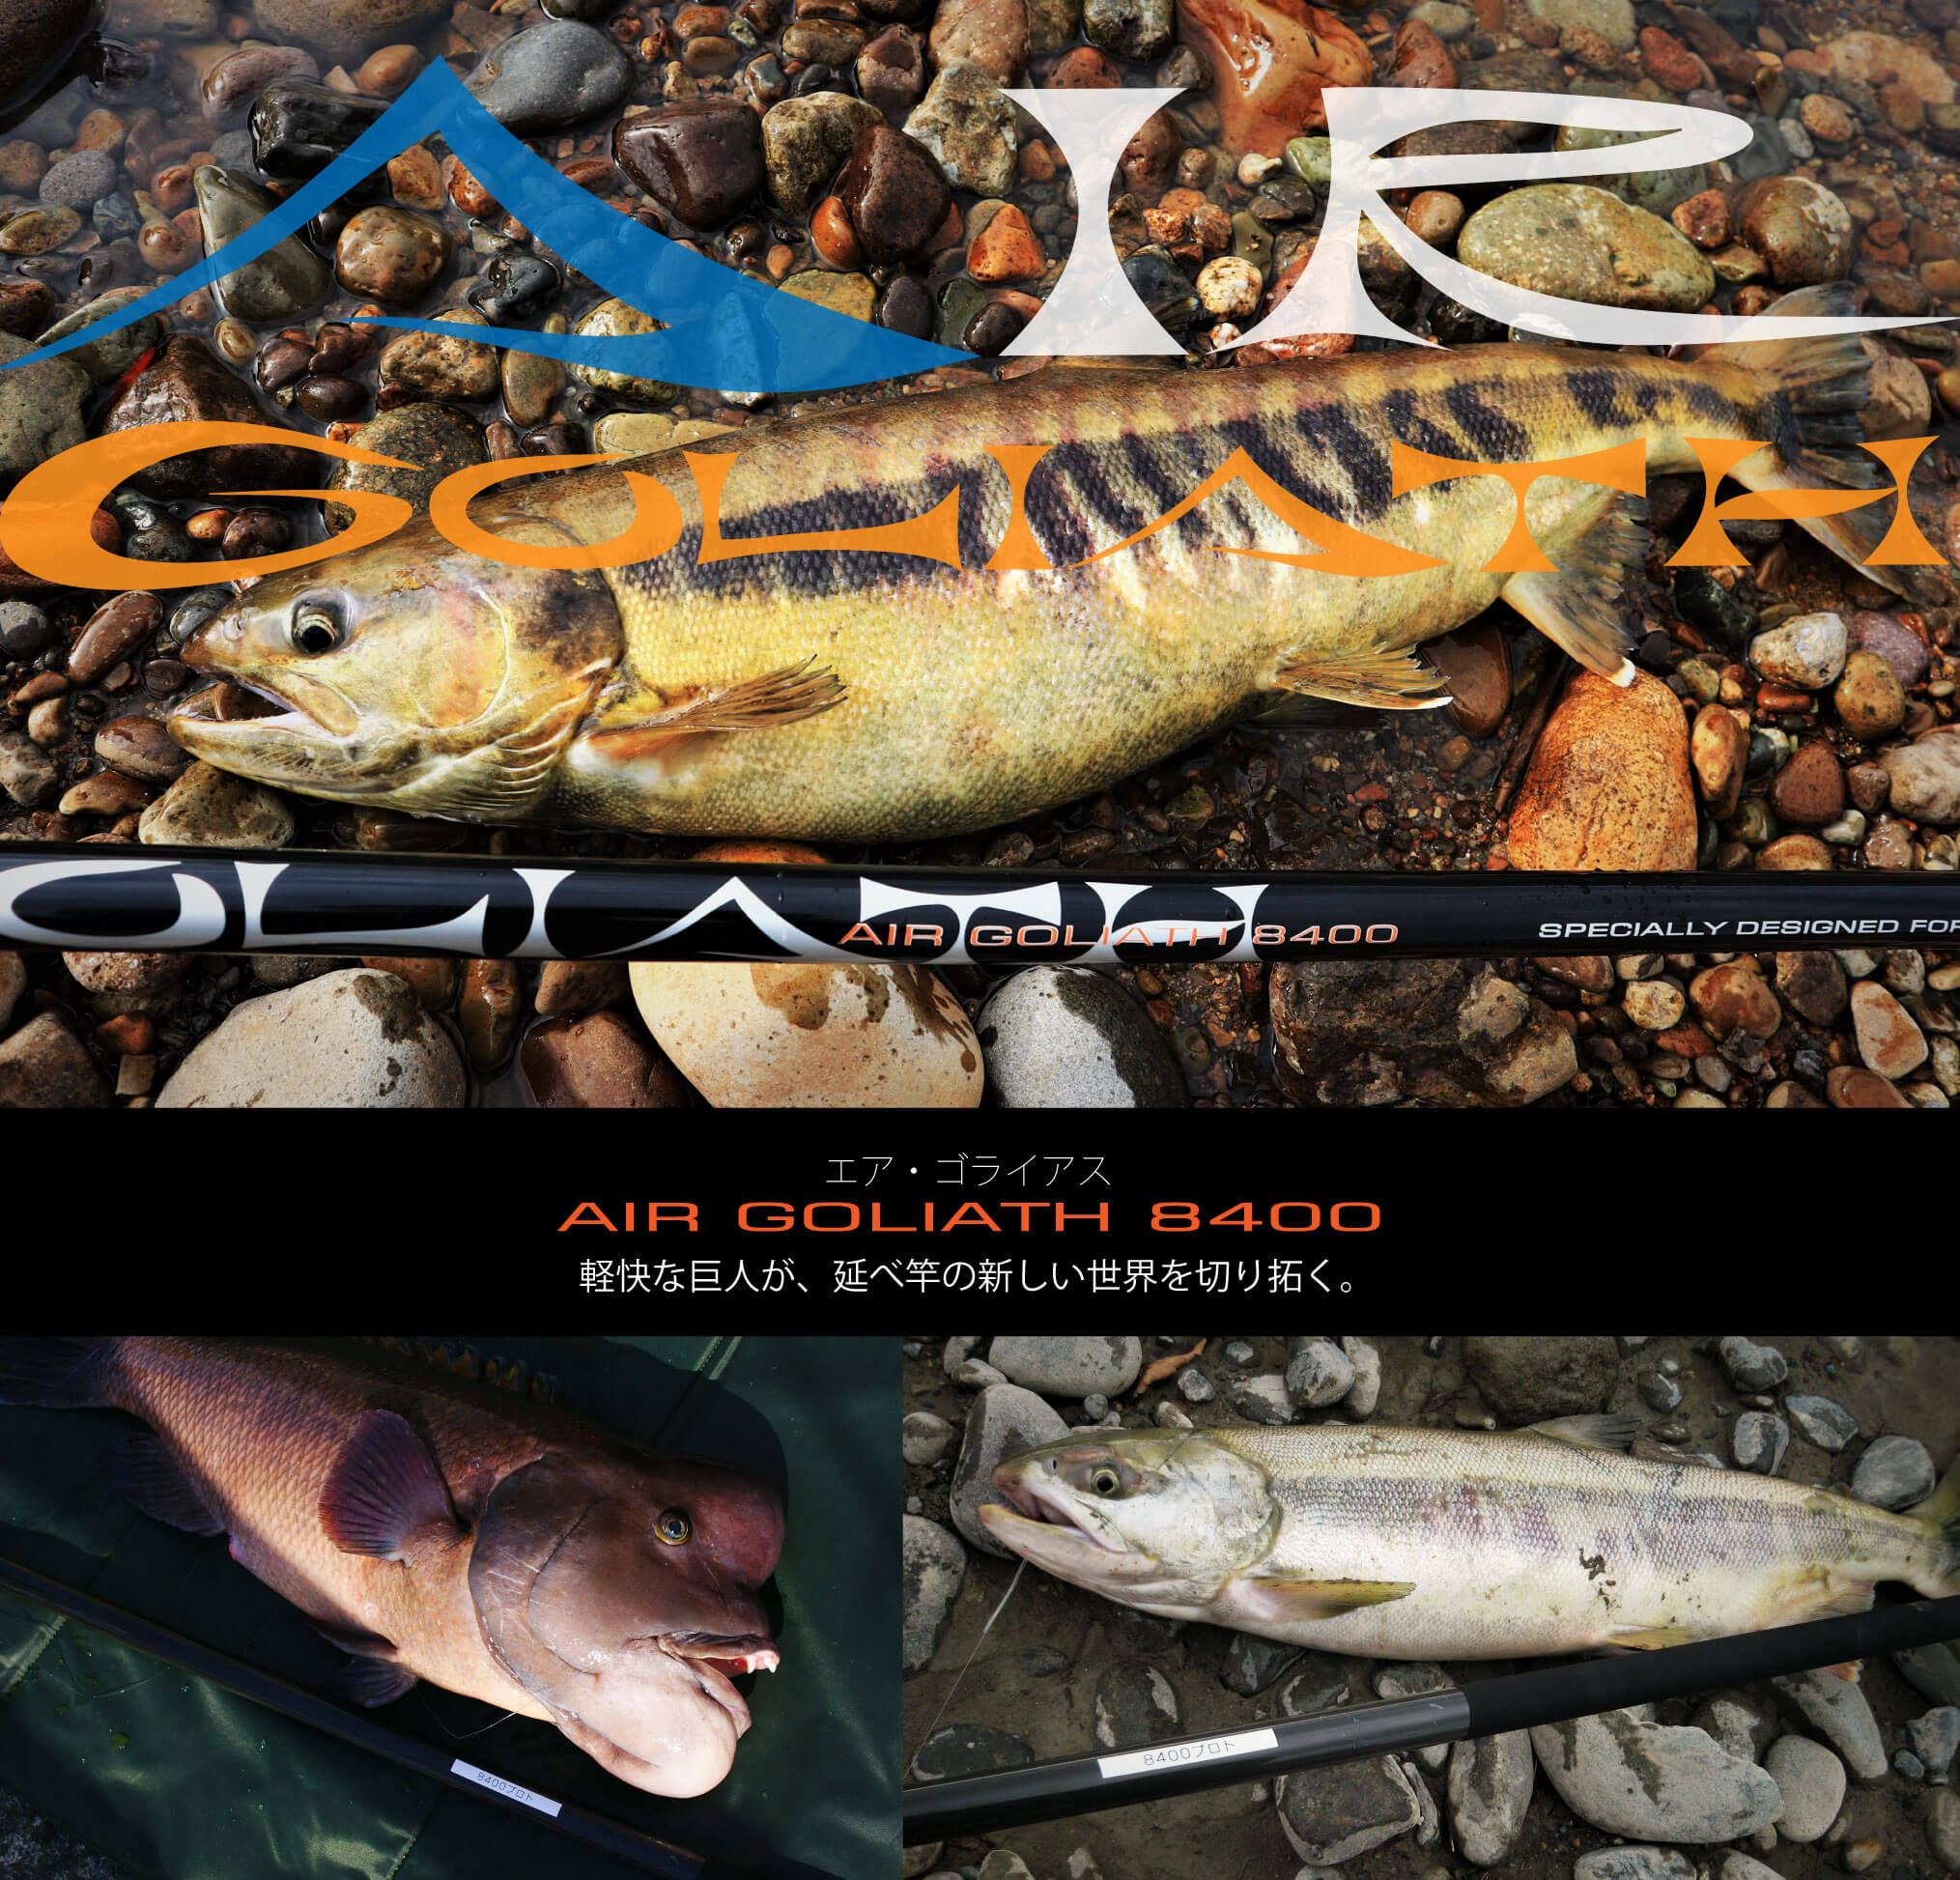 air goliath 8400 Japanese long fixed line rod for big salmon and steelhead